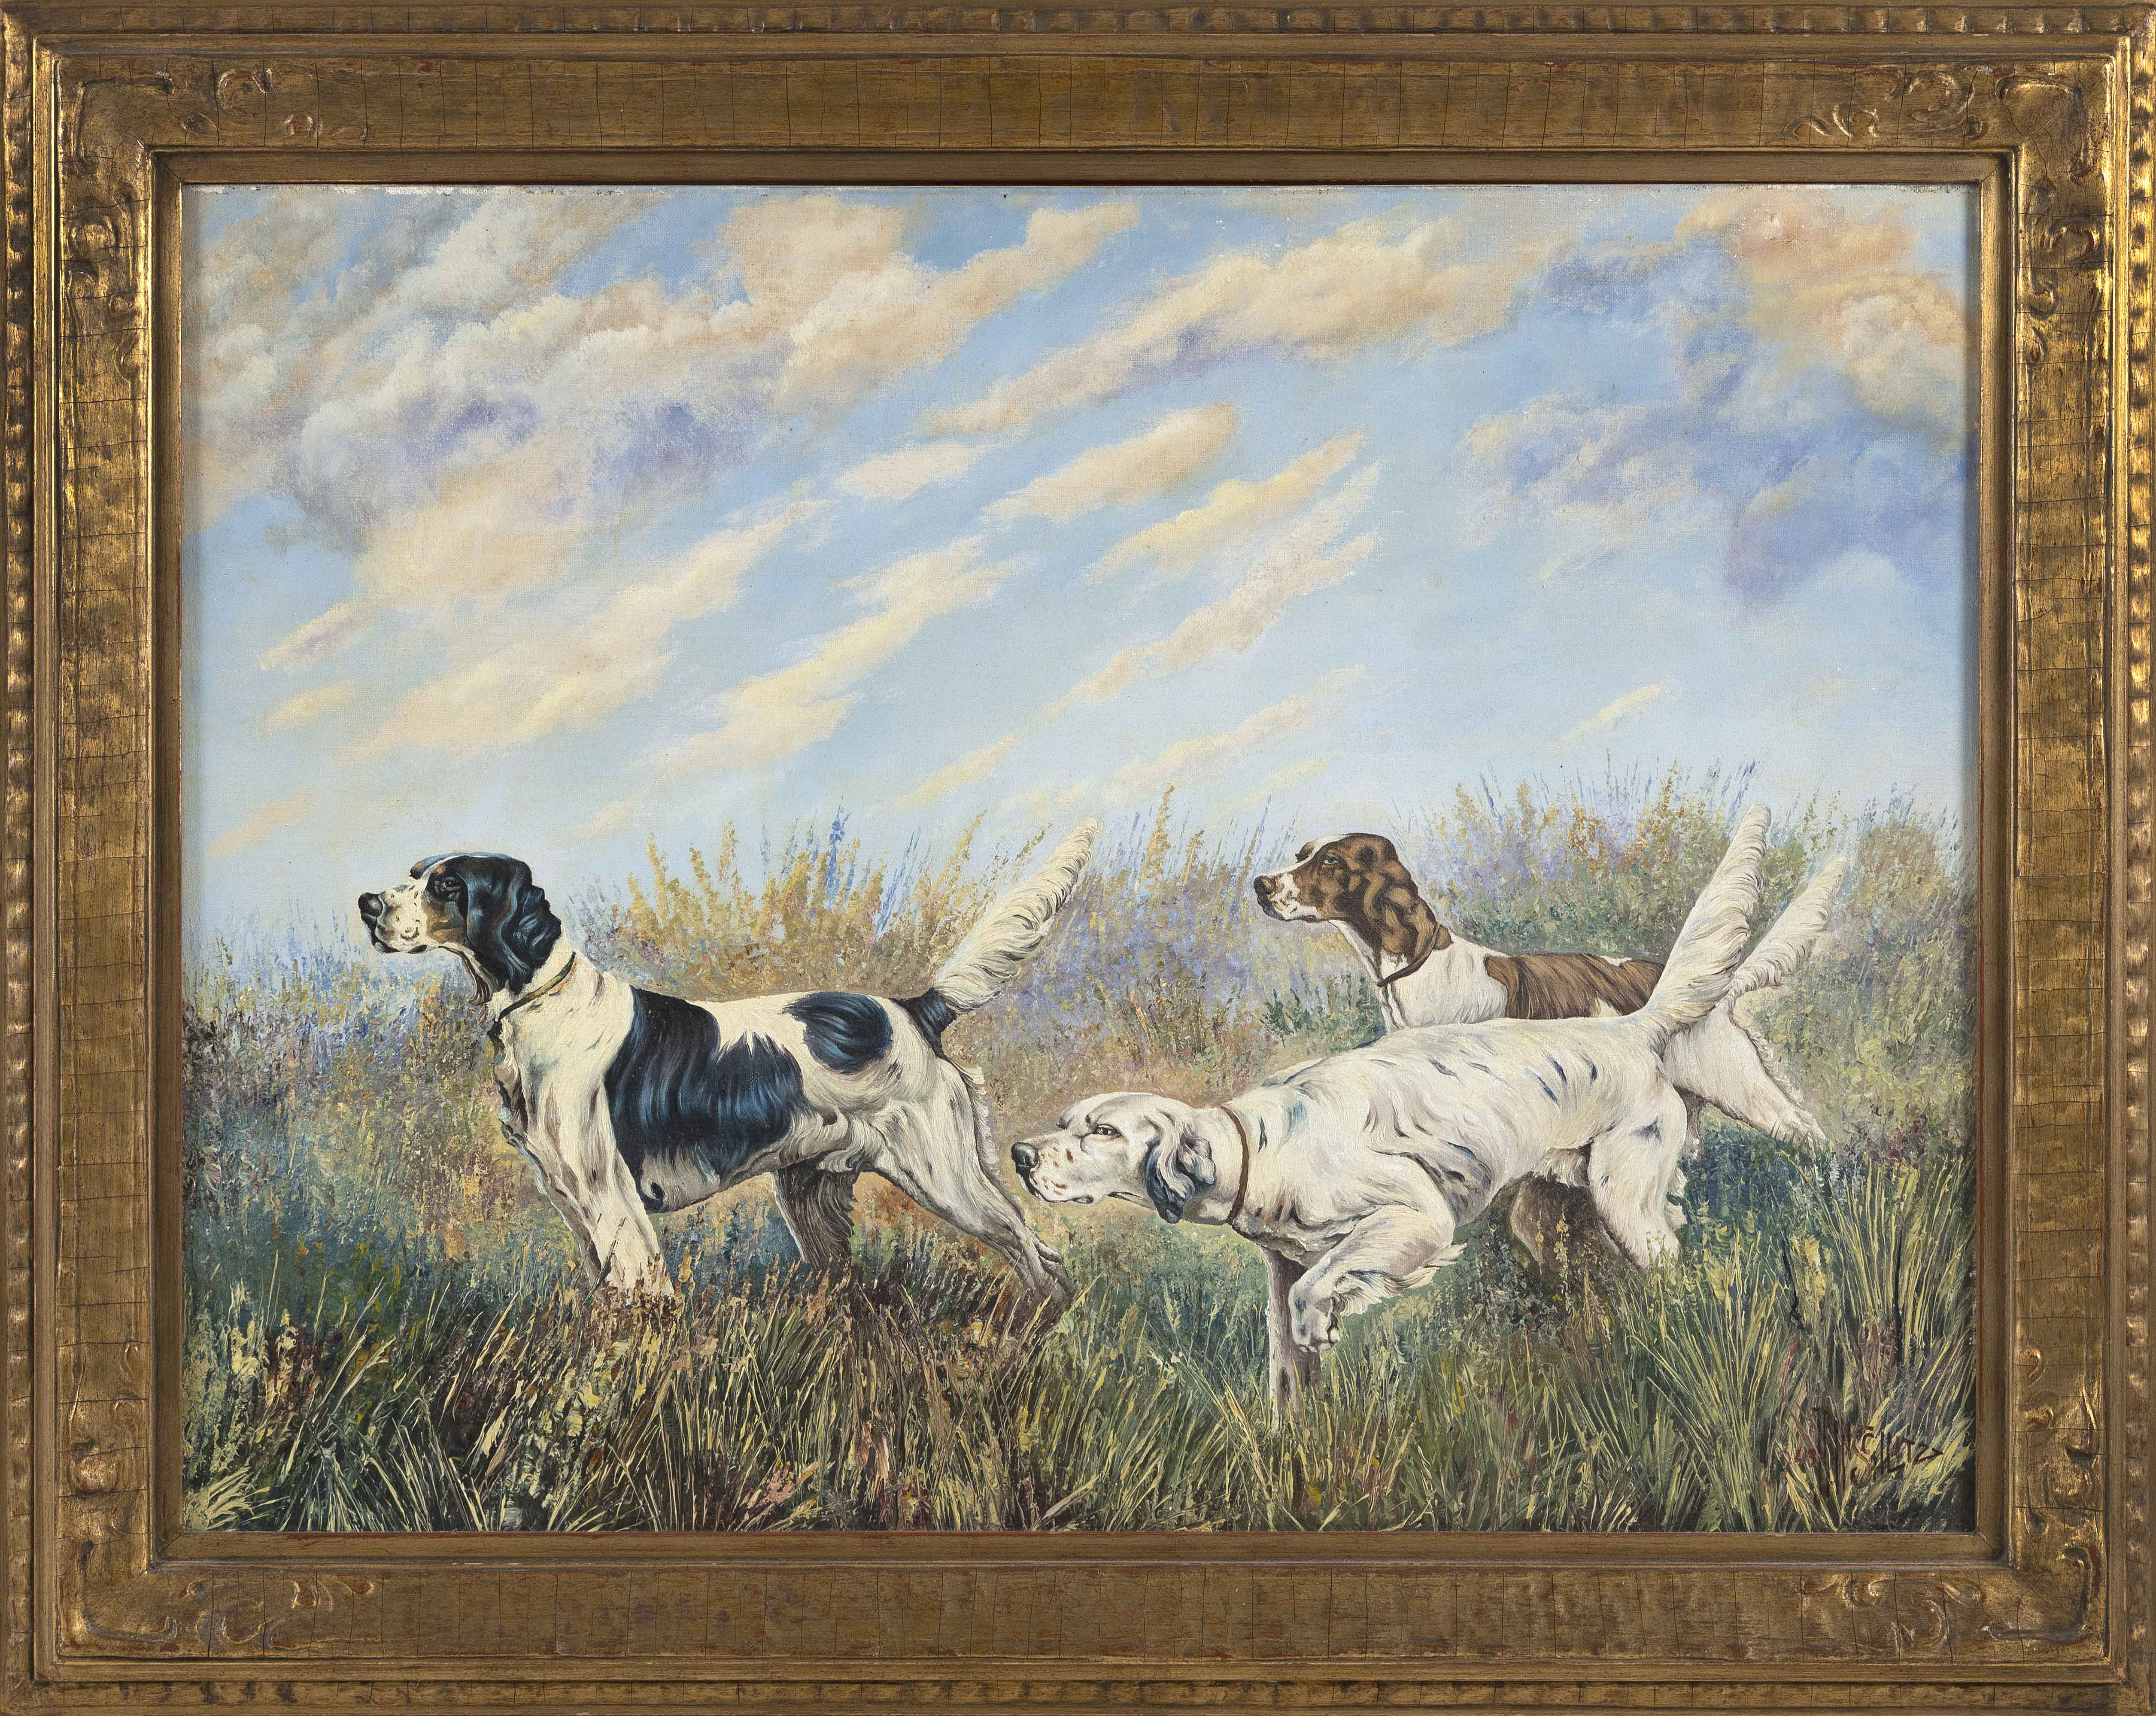 PAINTING OF THREE HUNTING DOGS Dated 1943 Oil on artist's board, 18